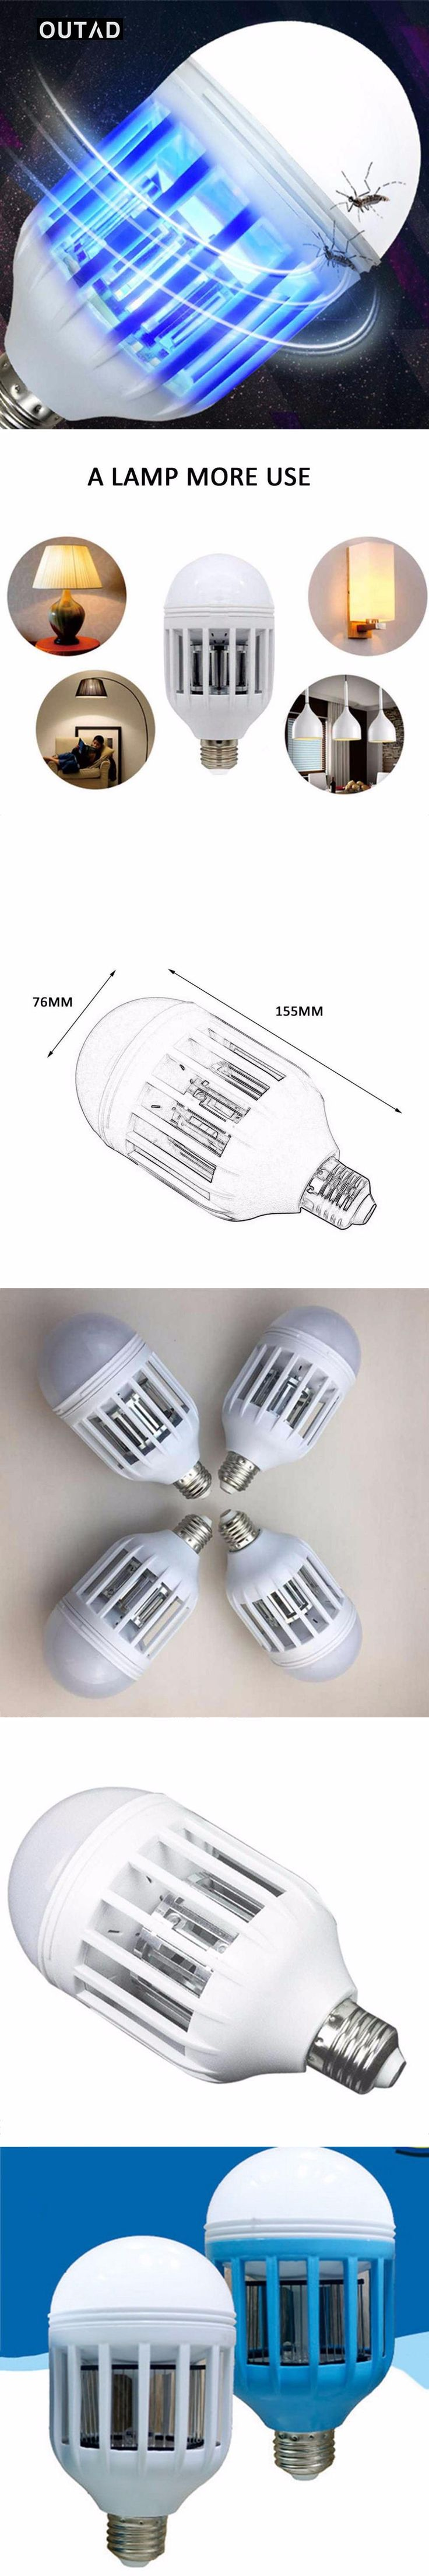 The 25 best e27 led ideas on pinterest led lighting home outad e27 led bulb mosquito electronic killer night light lamp insect flies repellent house accessorie lighting parisarafo Gallery